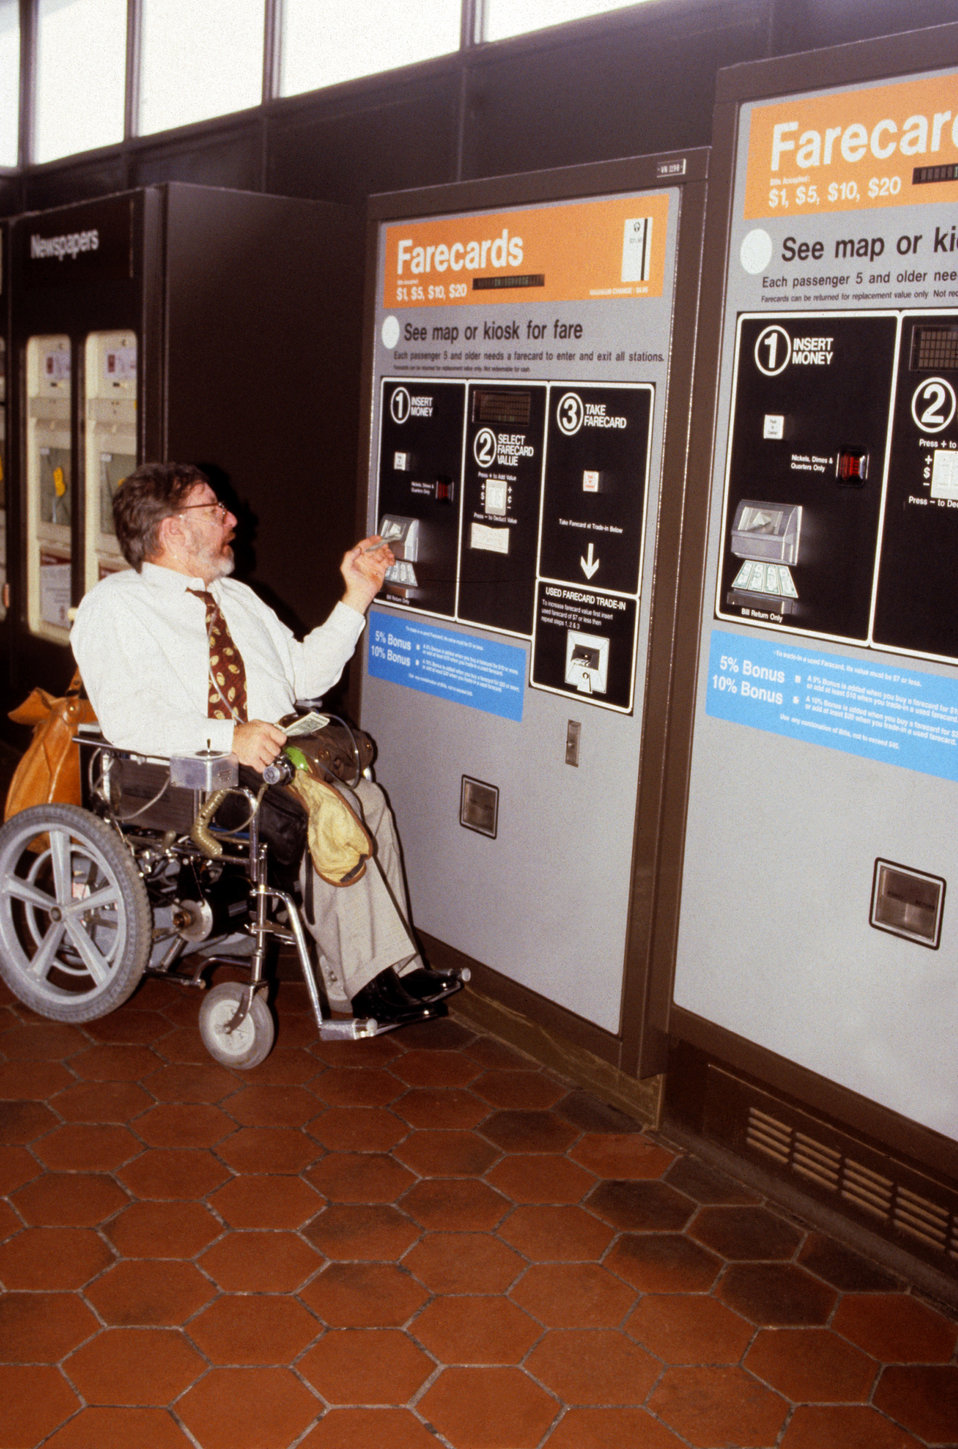 Depicted in this 2004 image was a wheelchair-seated man who was in the process of purchasing a ticket from an automatic ticket dispensing ma